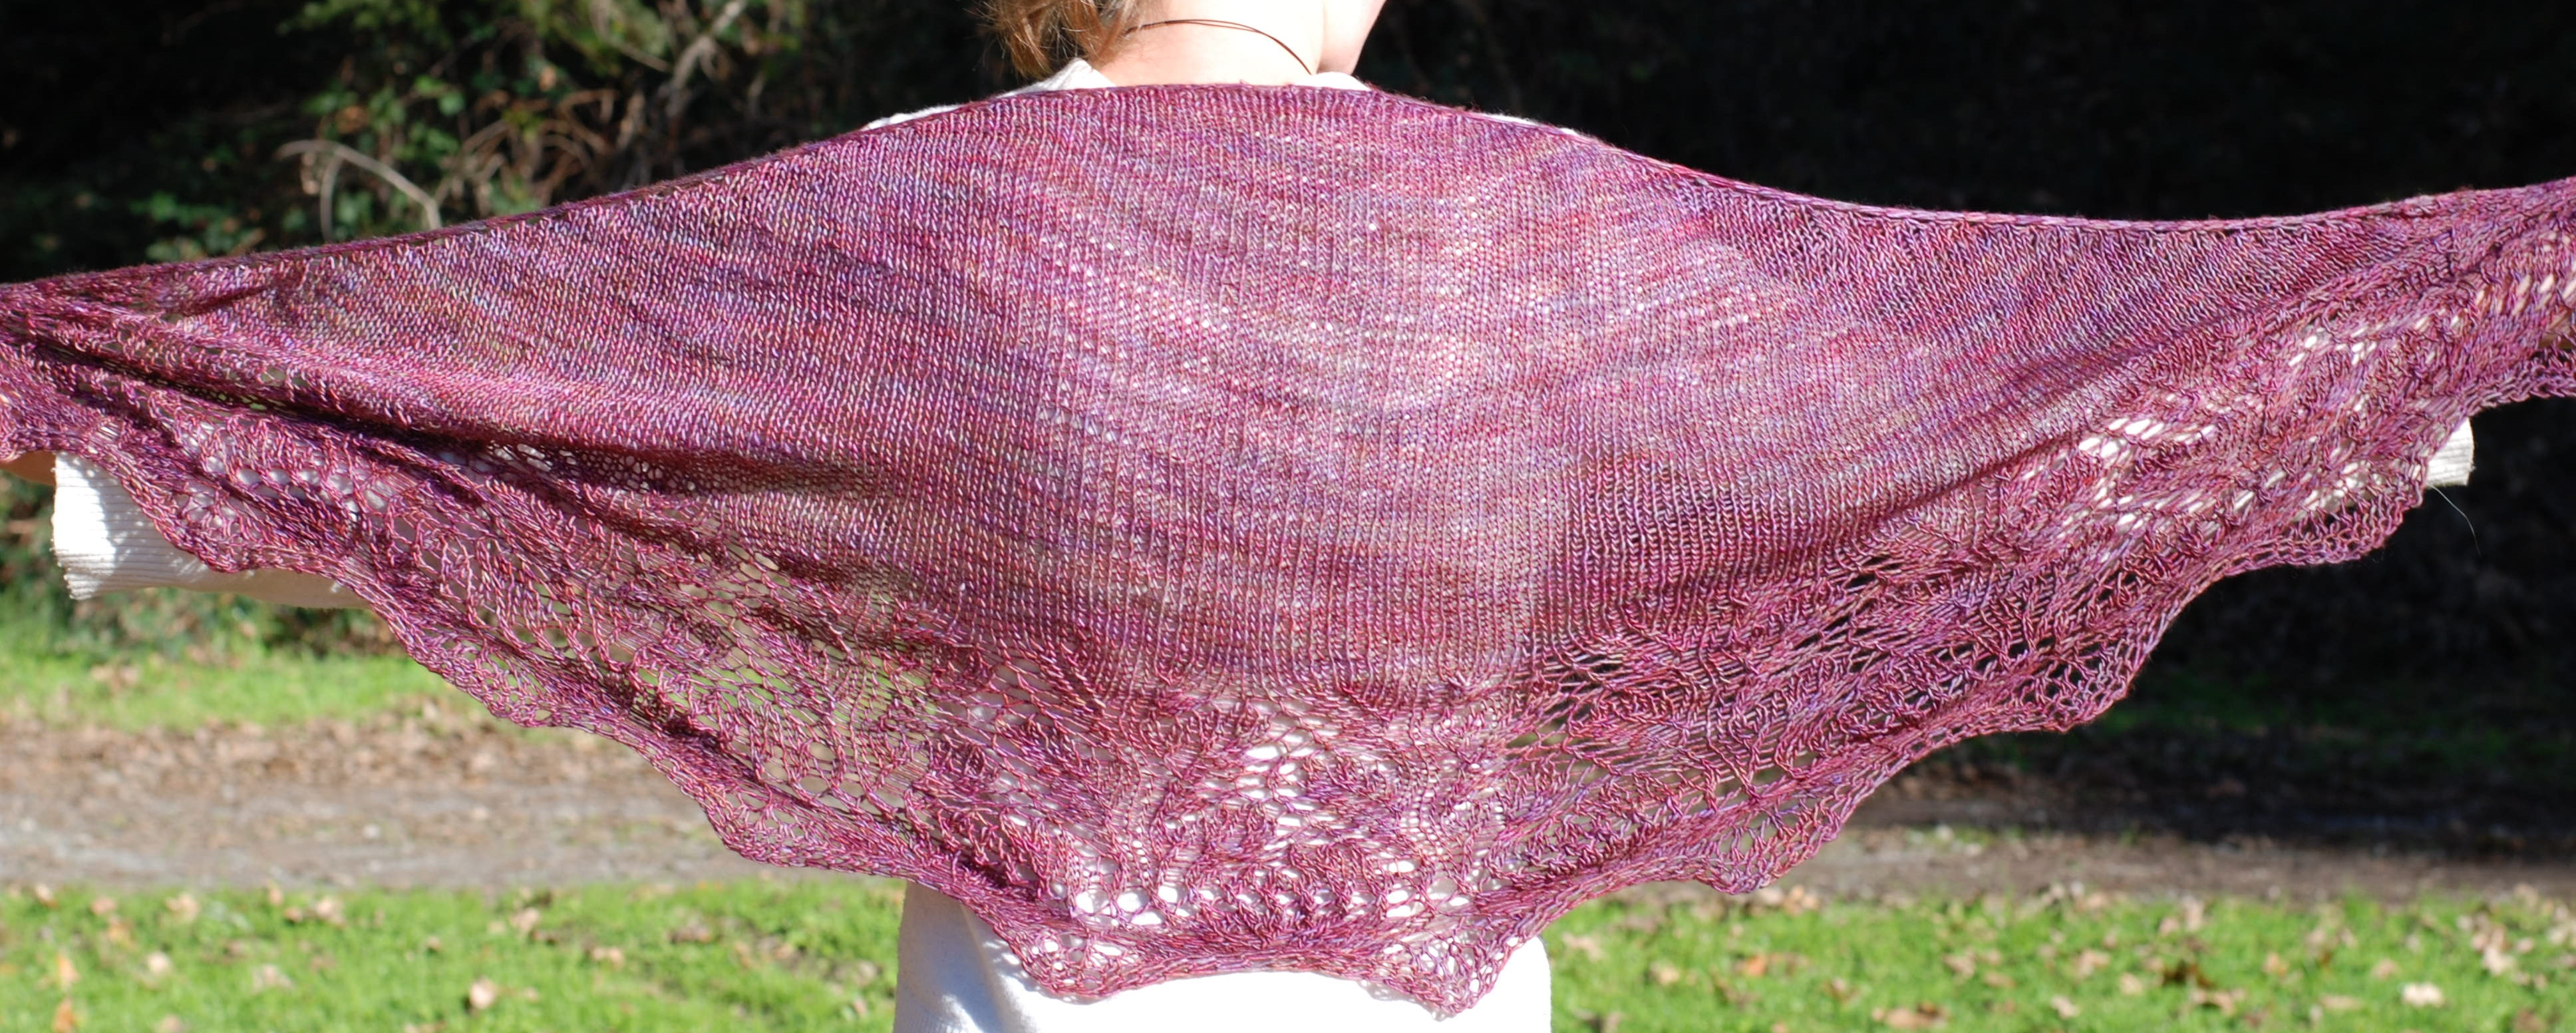 free knitting patterns Archives - Tributary Yarns & This Knitted Life